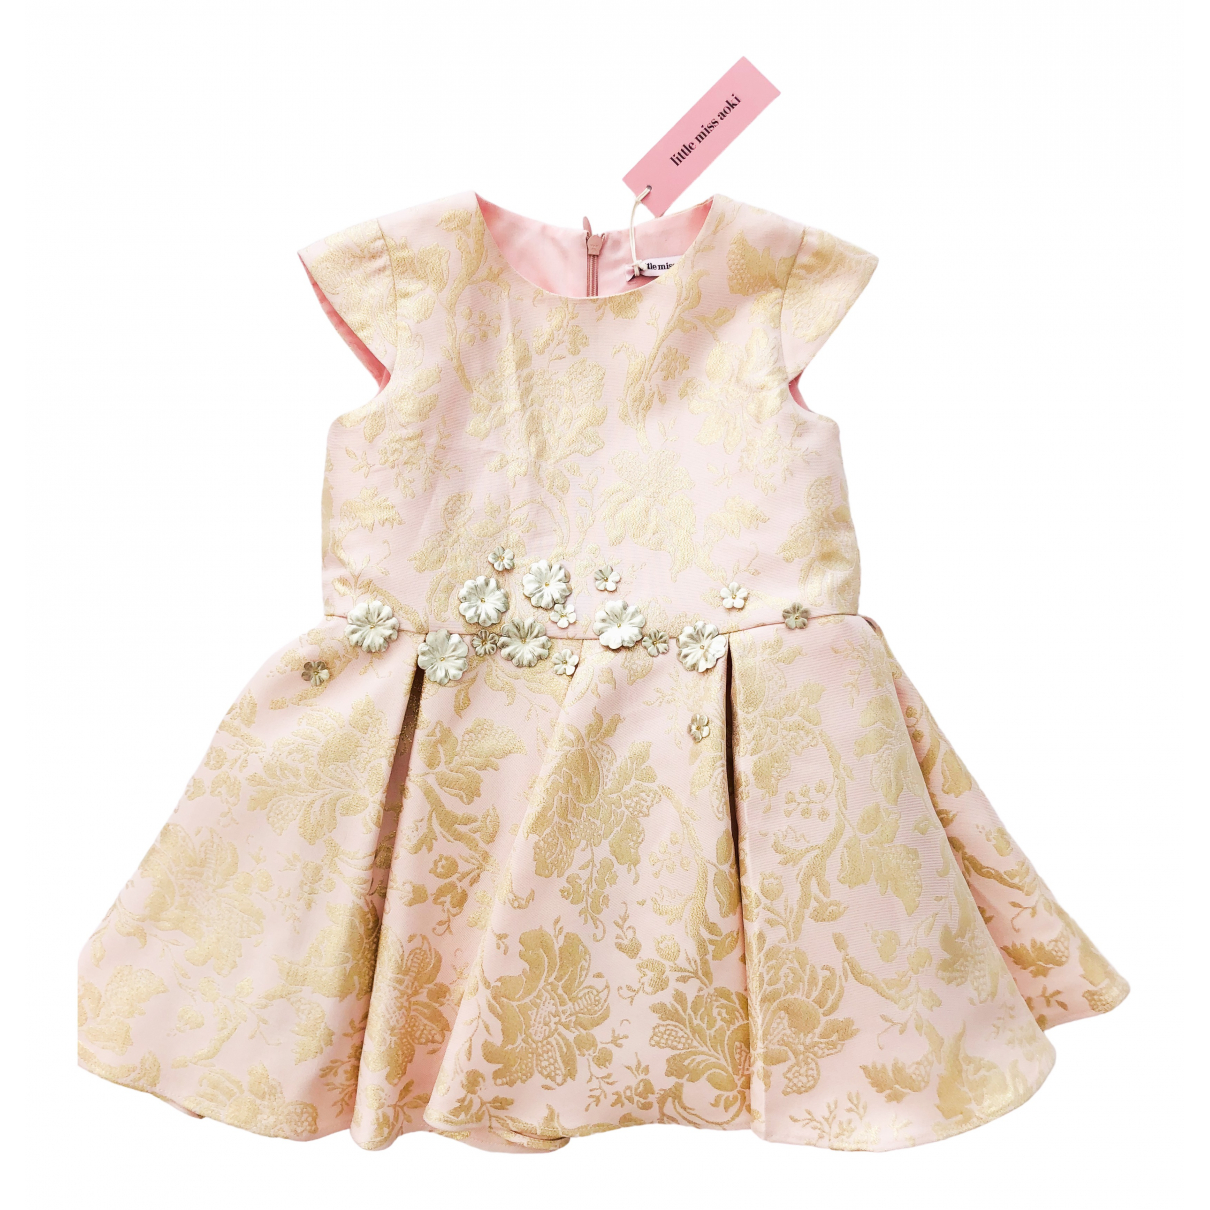 Mischka Aoki N Pink dress for Kids 4 years - until 40 inches UK